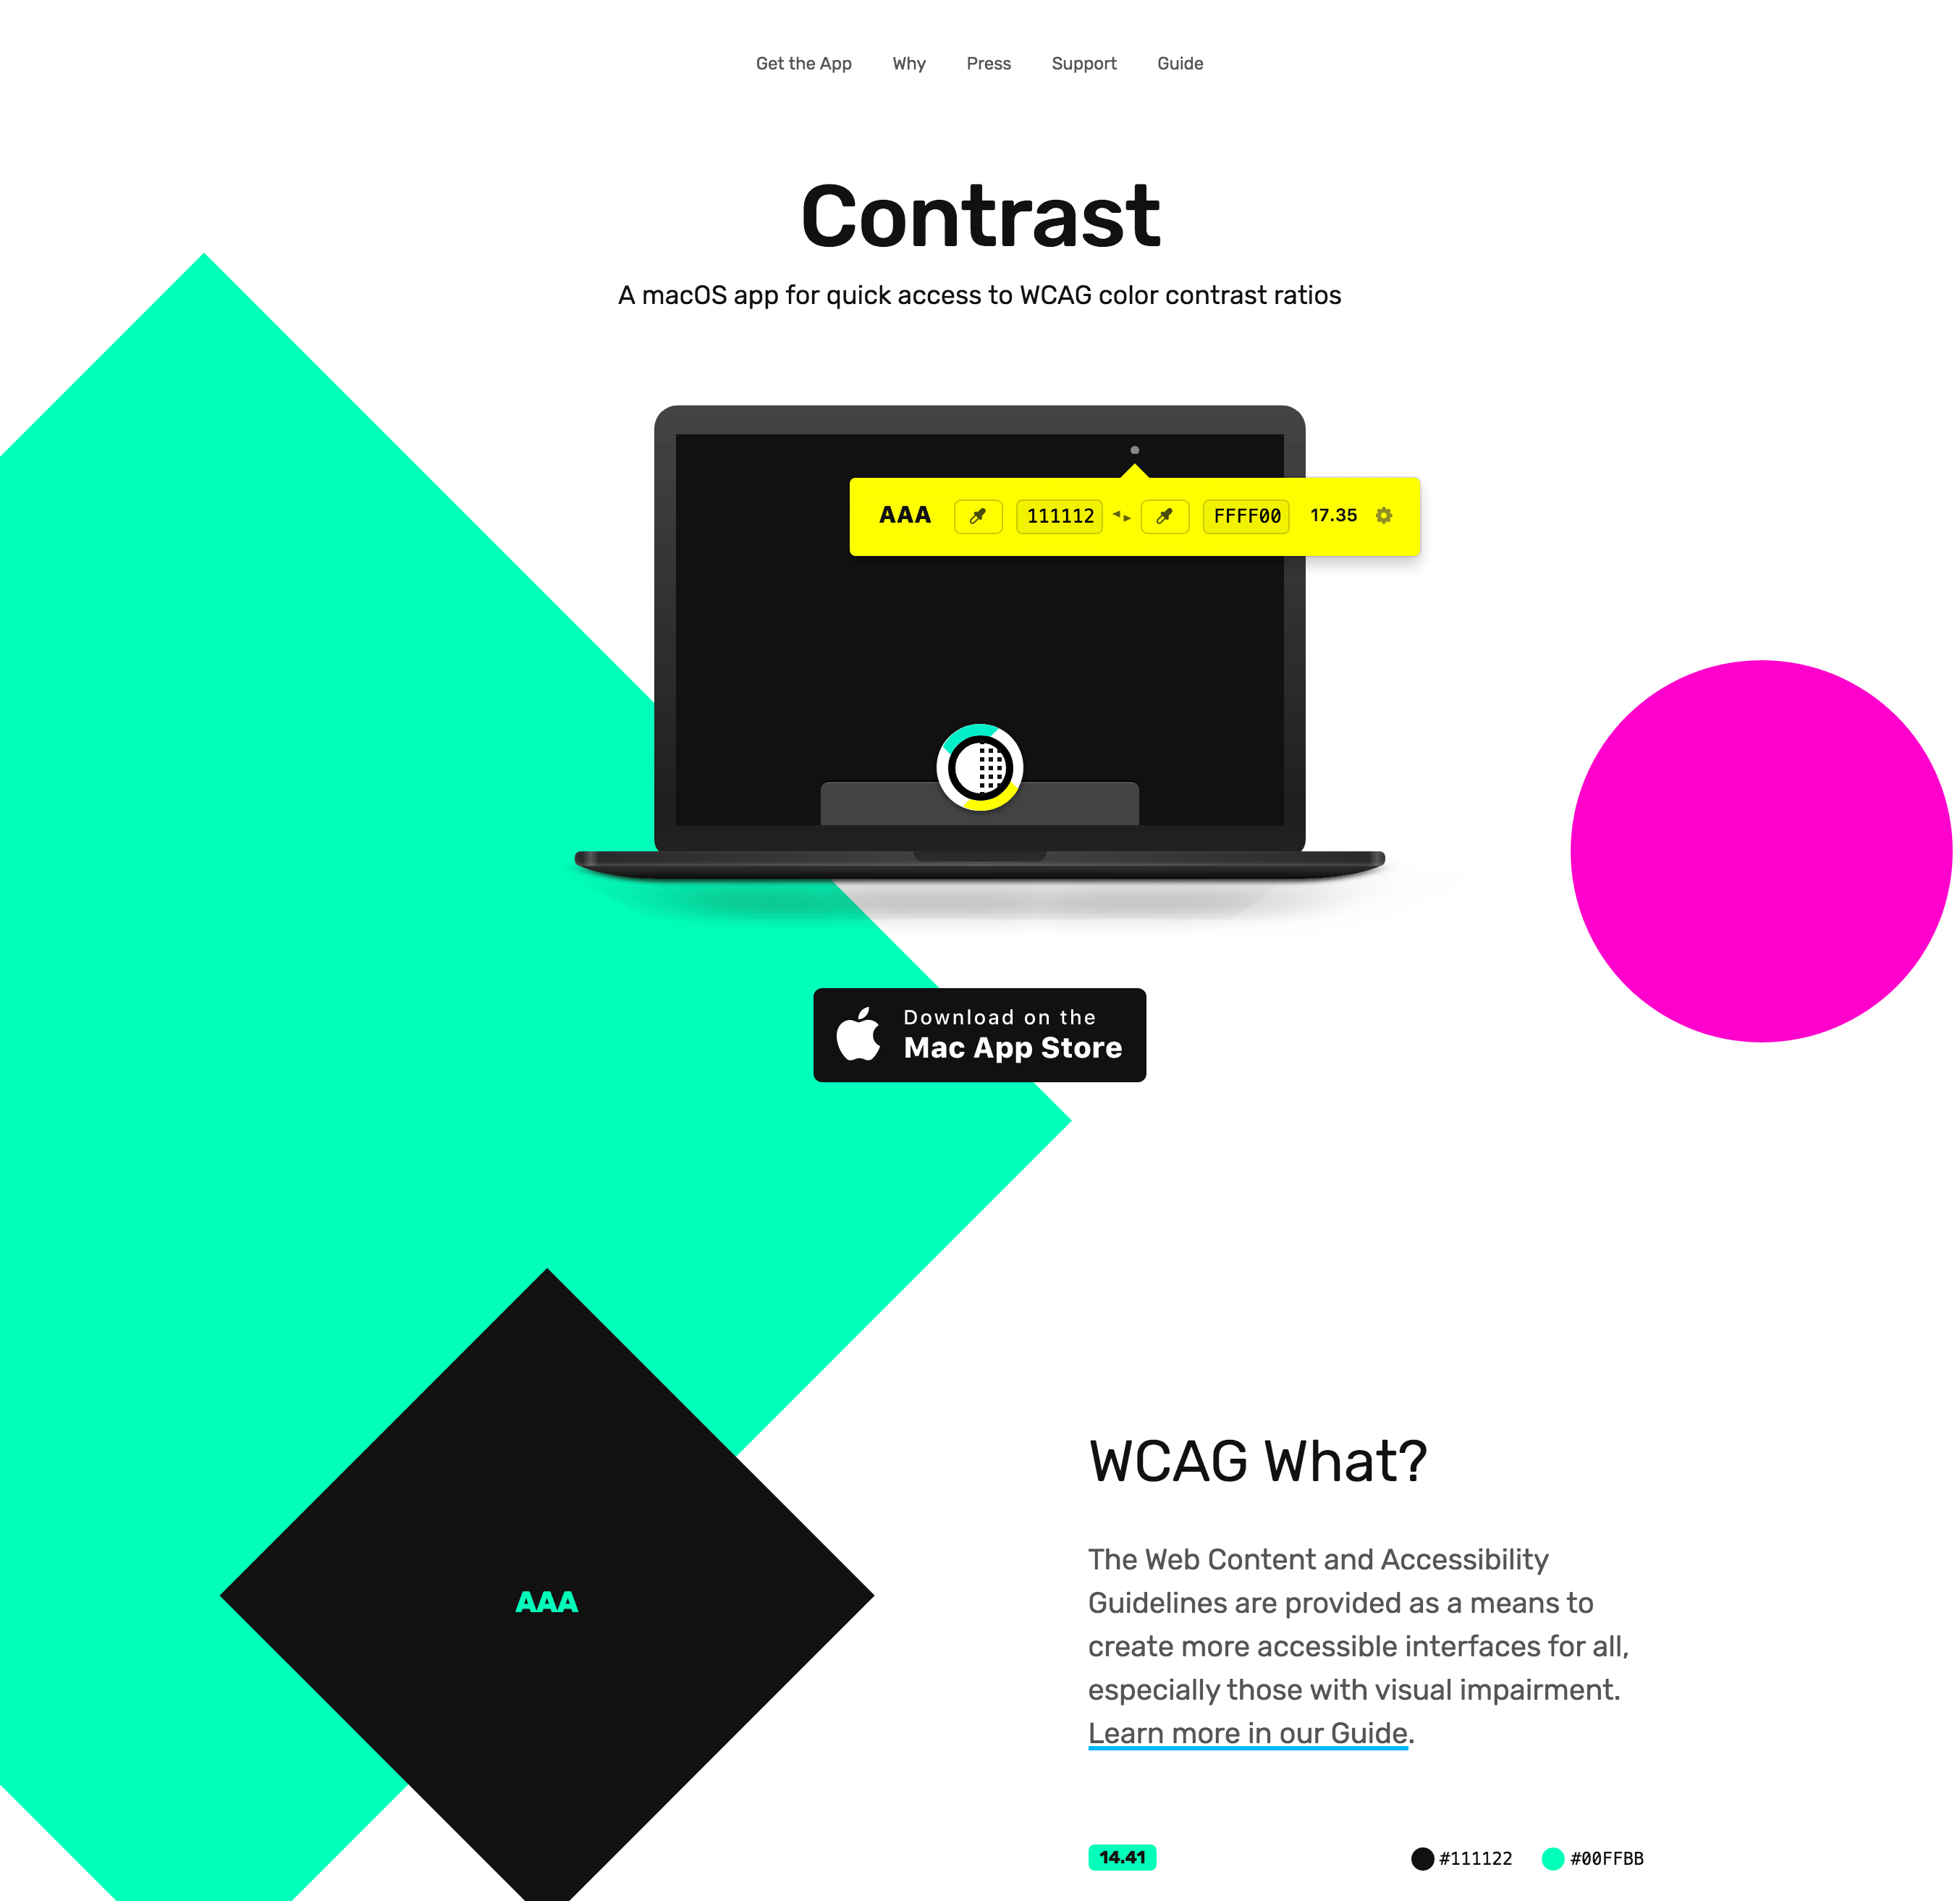 Screenshot of the Contrast app design's use of simple shapes